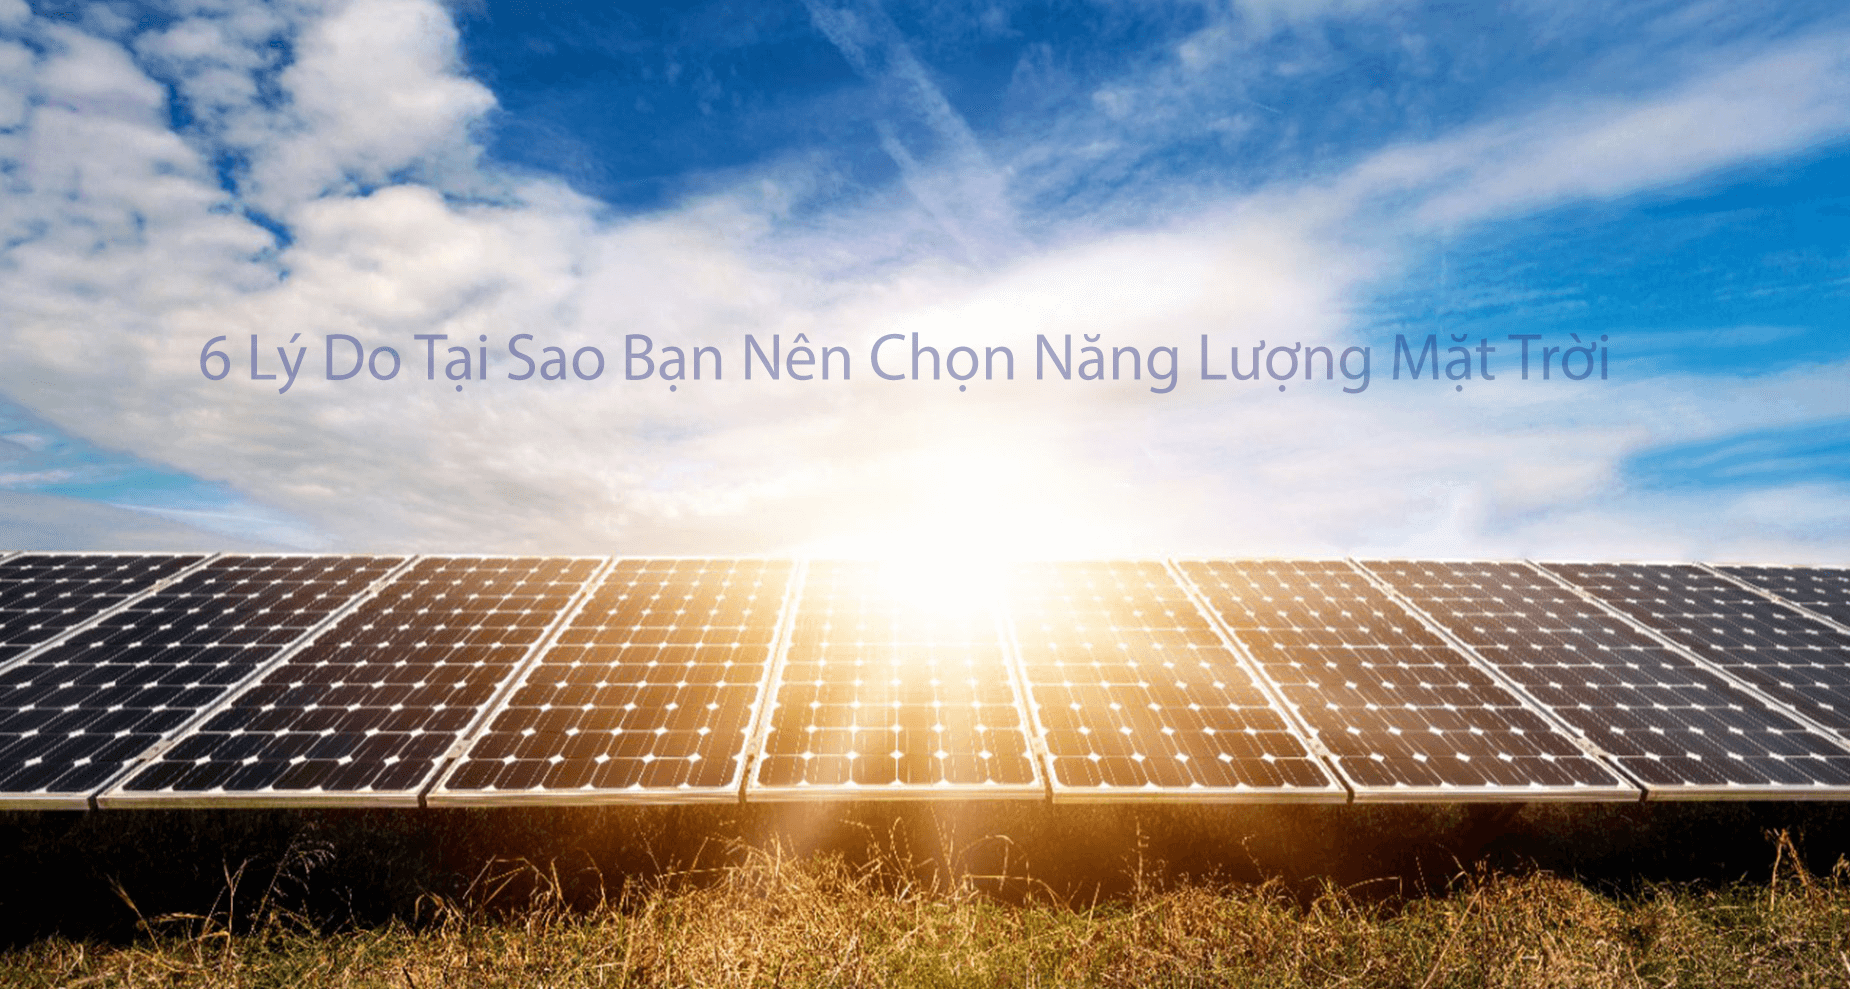 6 lý do bạn nên chọn hệ thống năng lượng mặt trời